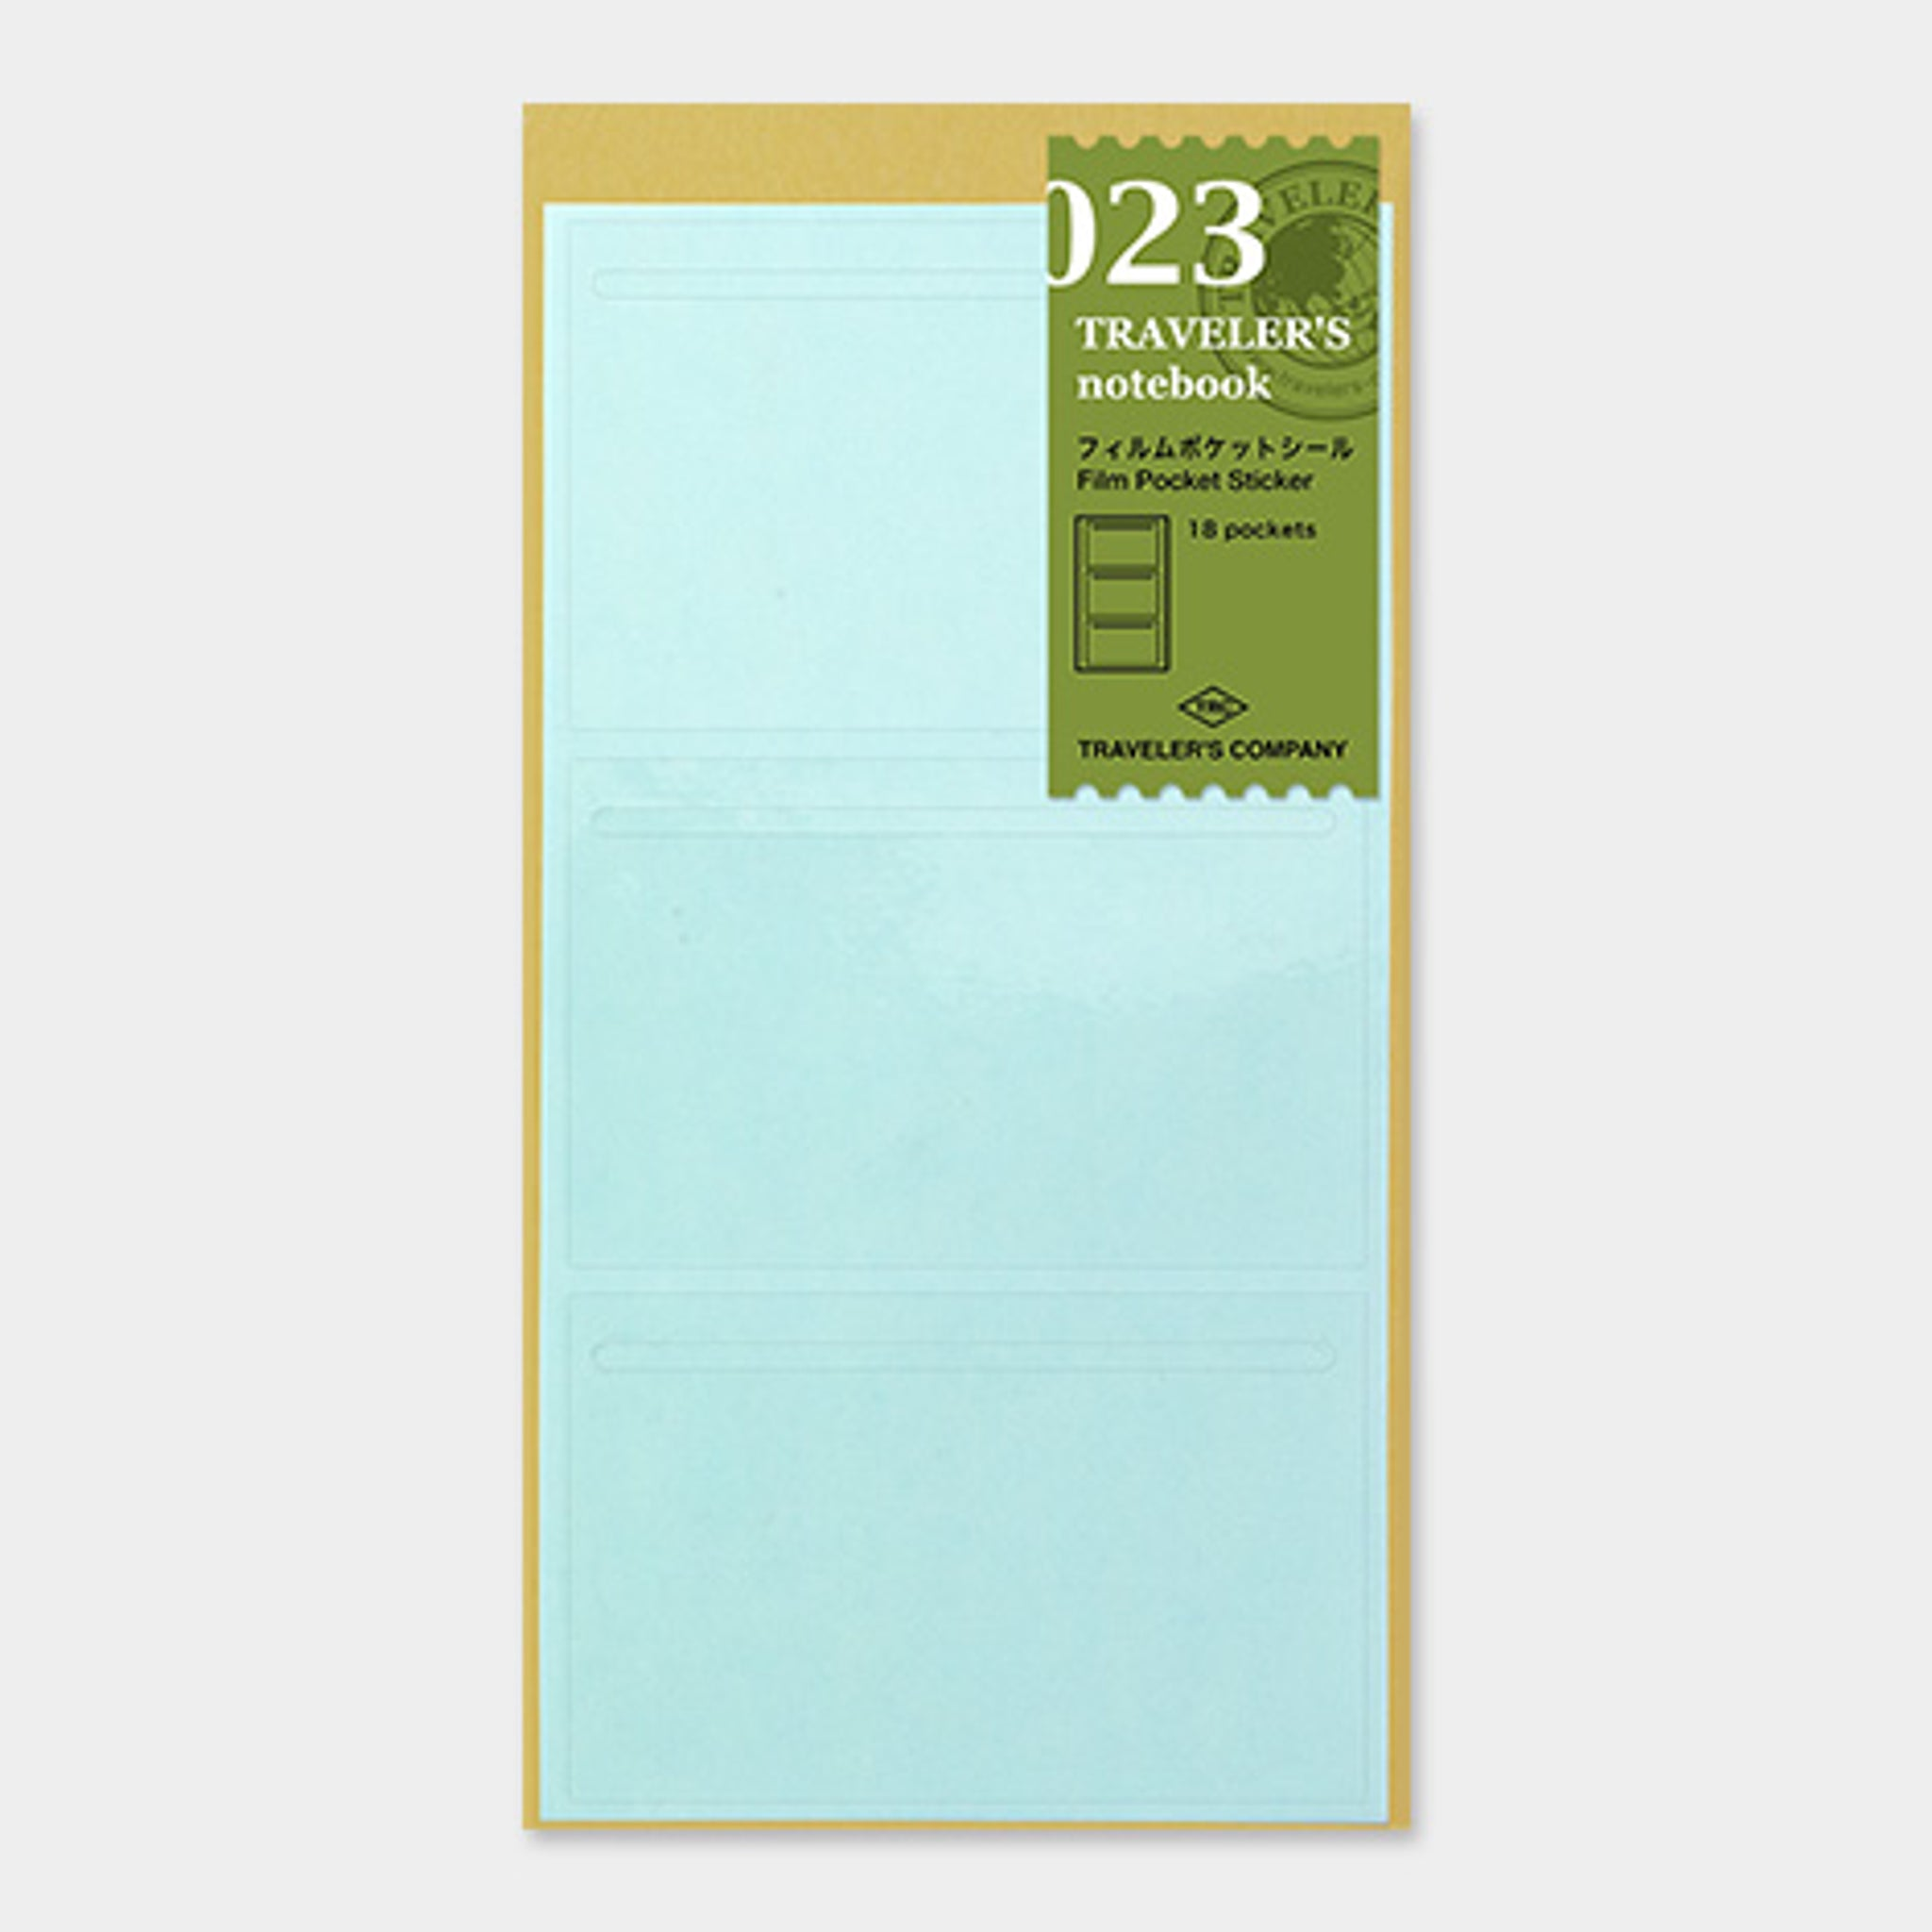 Traveler's Notebook Refill 023 (Regular Size) - Film Pocket Sticker